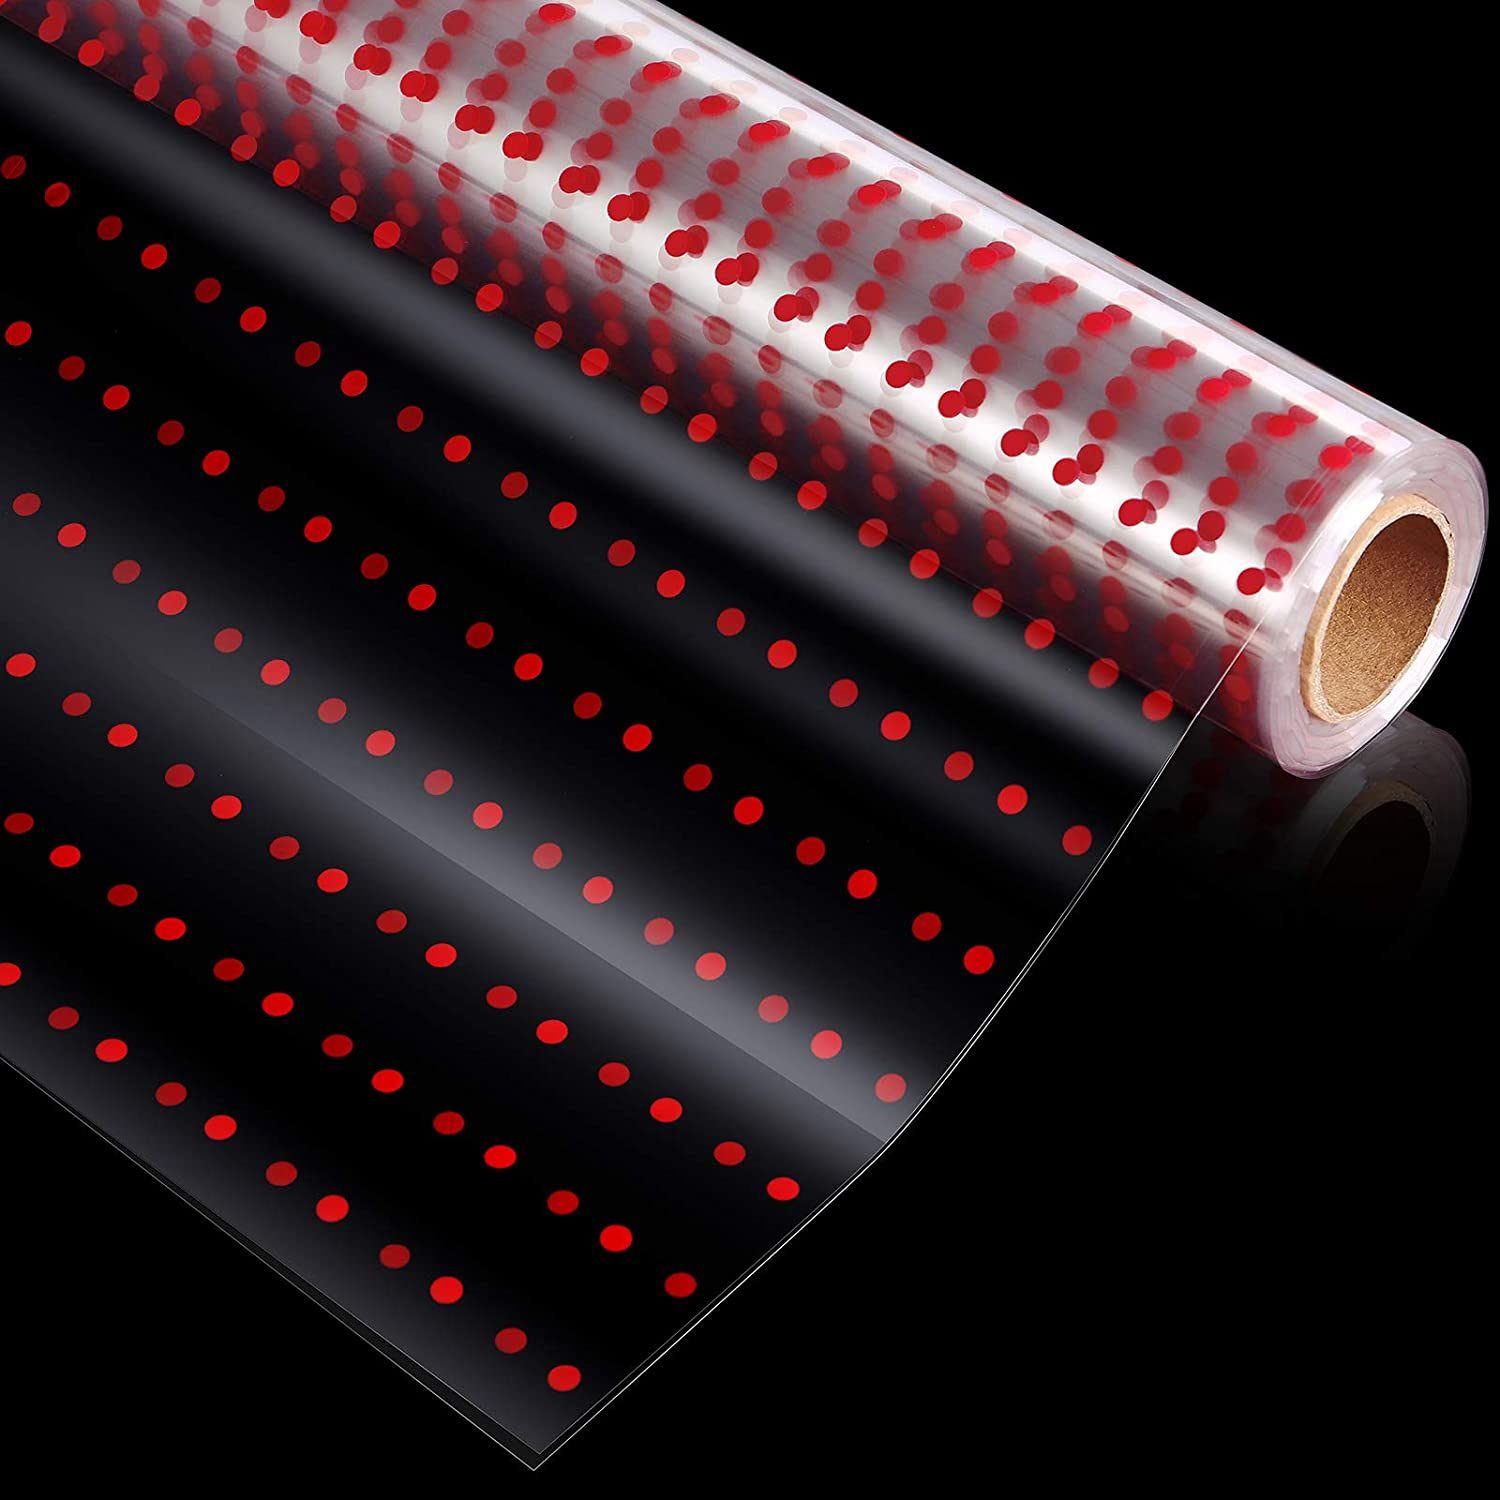 STOBOK Cellophane Wrap Roll | Unfolded Width 32 inch x 100 Ft,Red Polk Dot Paper Wrapper,3 Mil Thicken Transparent Long Film Gift Wrappings for Flowers,Bouquet,Basket,Food Packing Paper